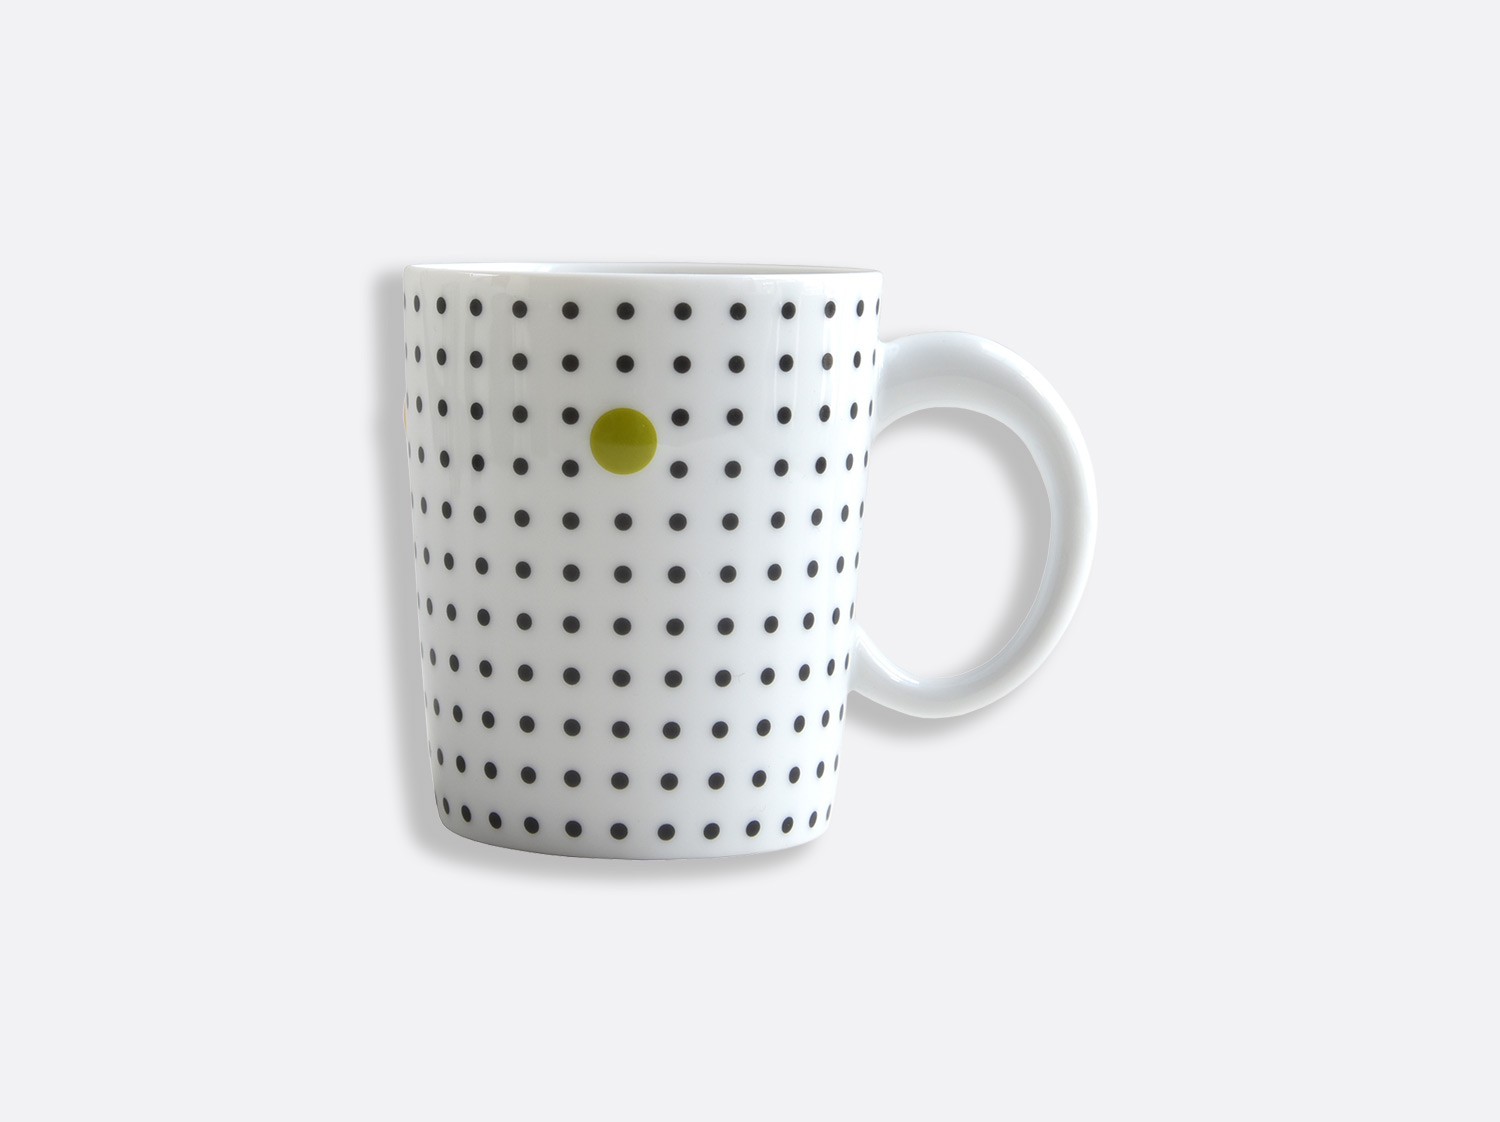 Mug anthracite 25 cl en porcelaine de la collection Knossos - Olivier Gagnère Bernardaud